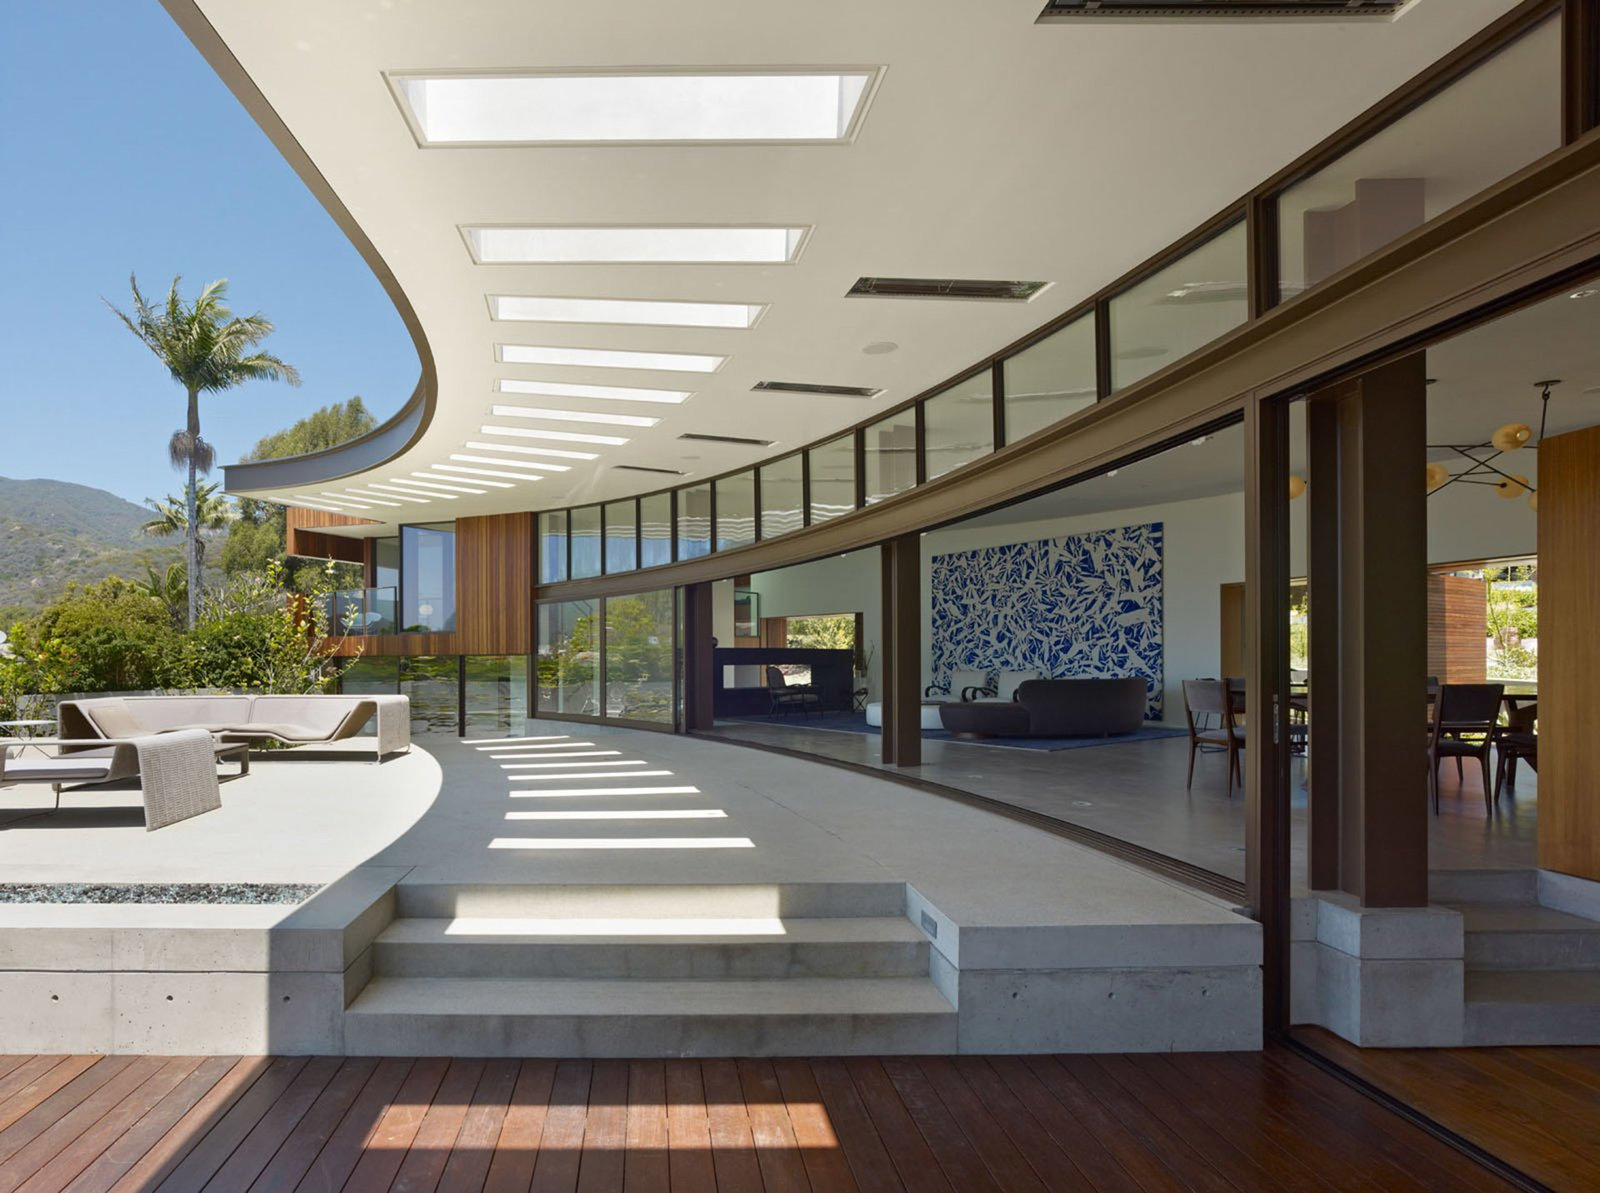 The courtyard side of the house is an exercise in transparency. Sliding glass panels open up the entire house to the outdoors.  Ziering Residence